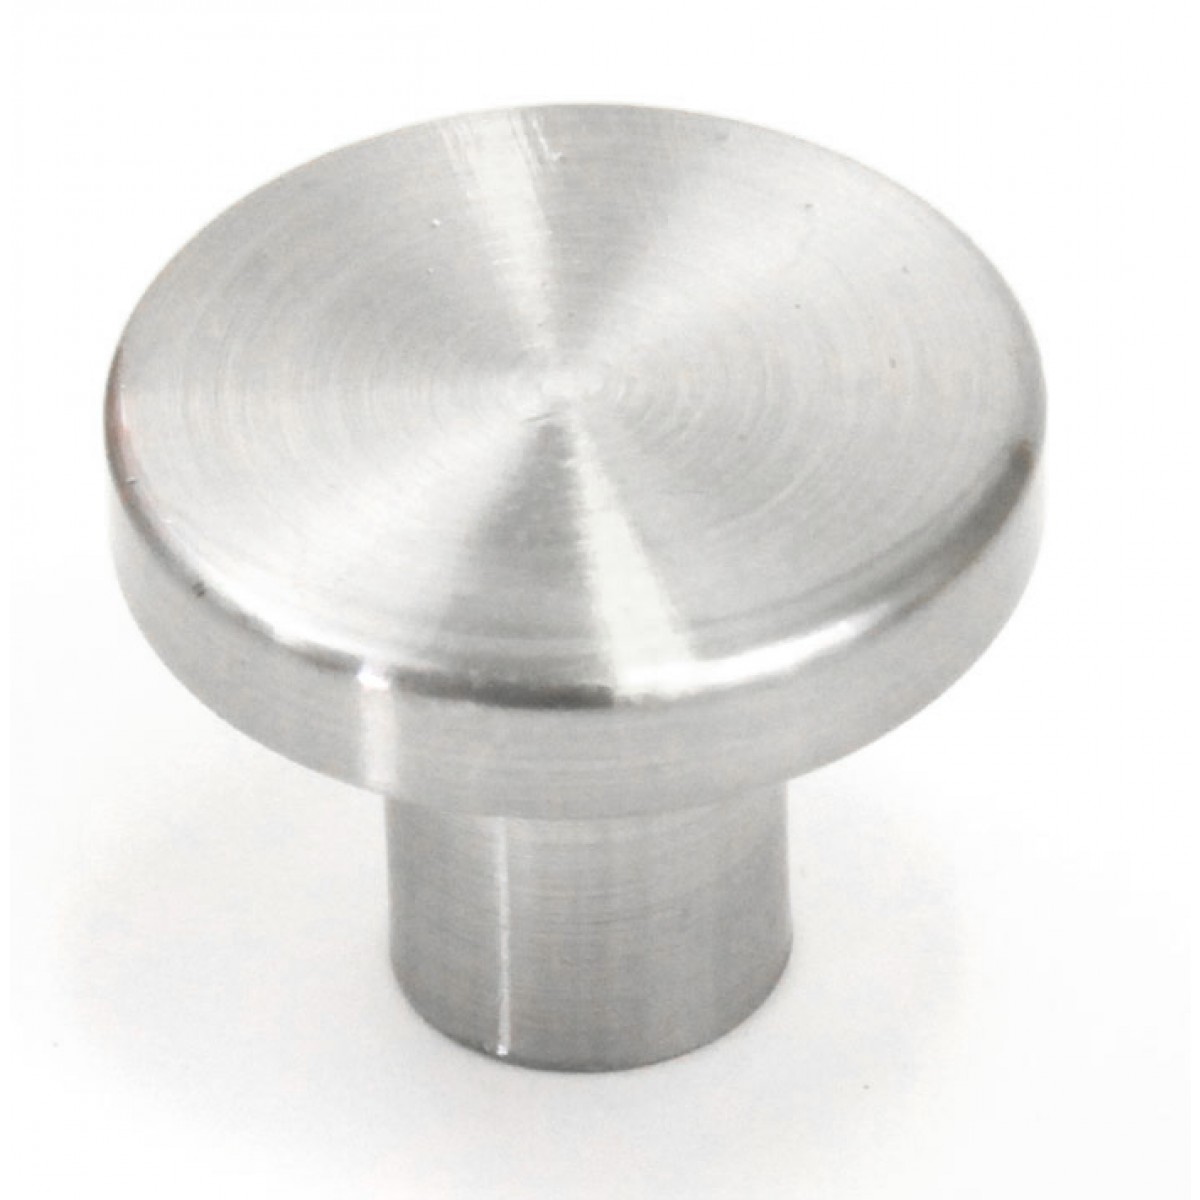 White apron ale - Ale 1 Inch Cabinet Pull Knob Brushed Nickel Finish